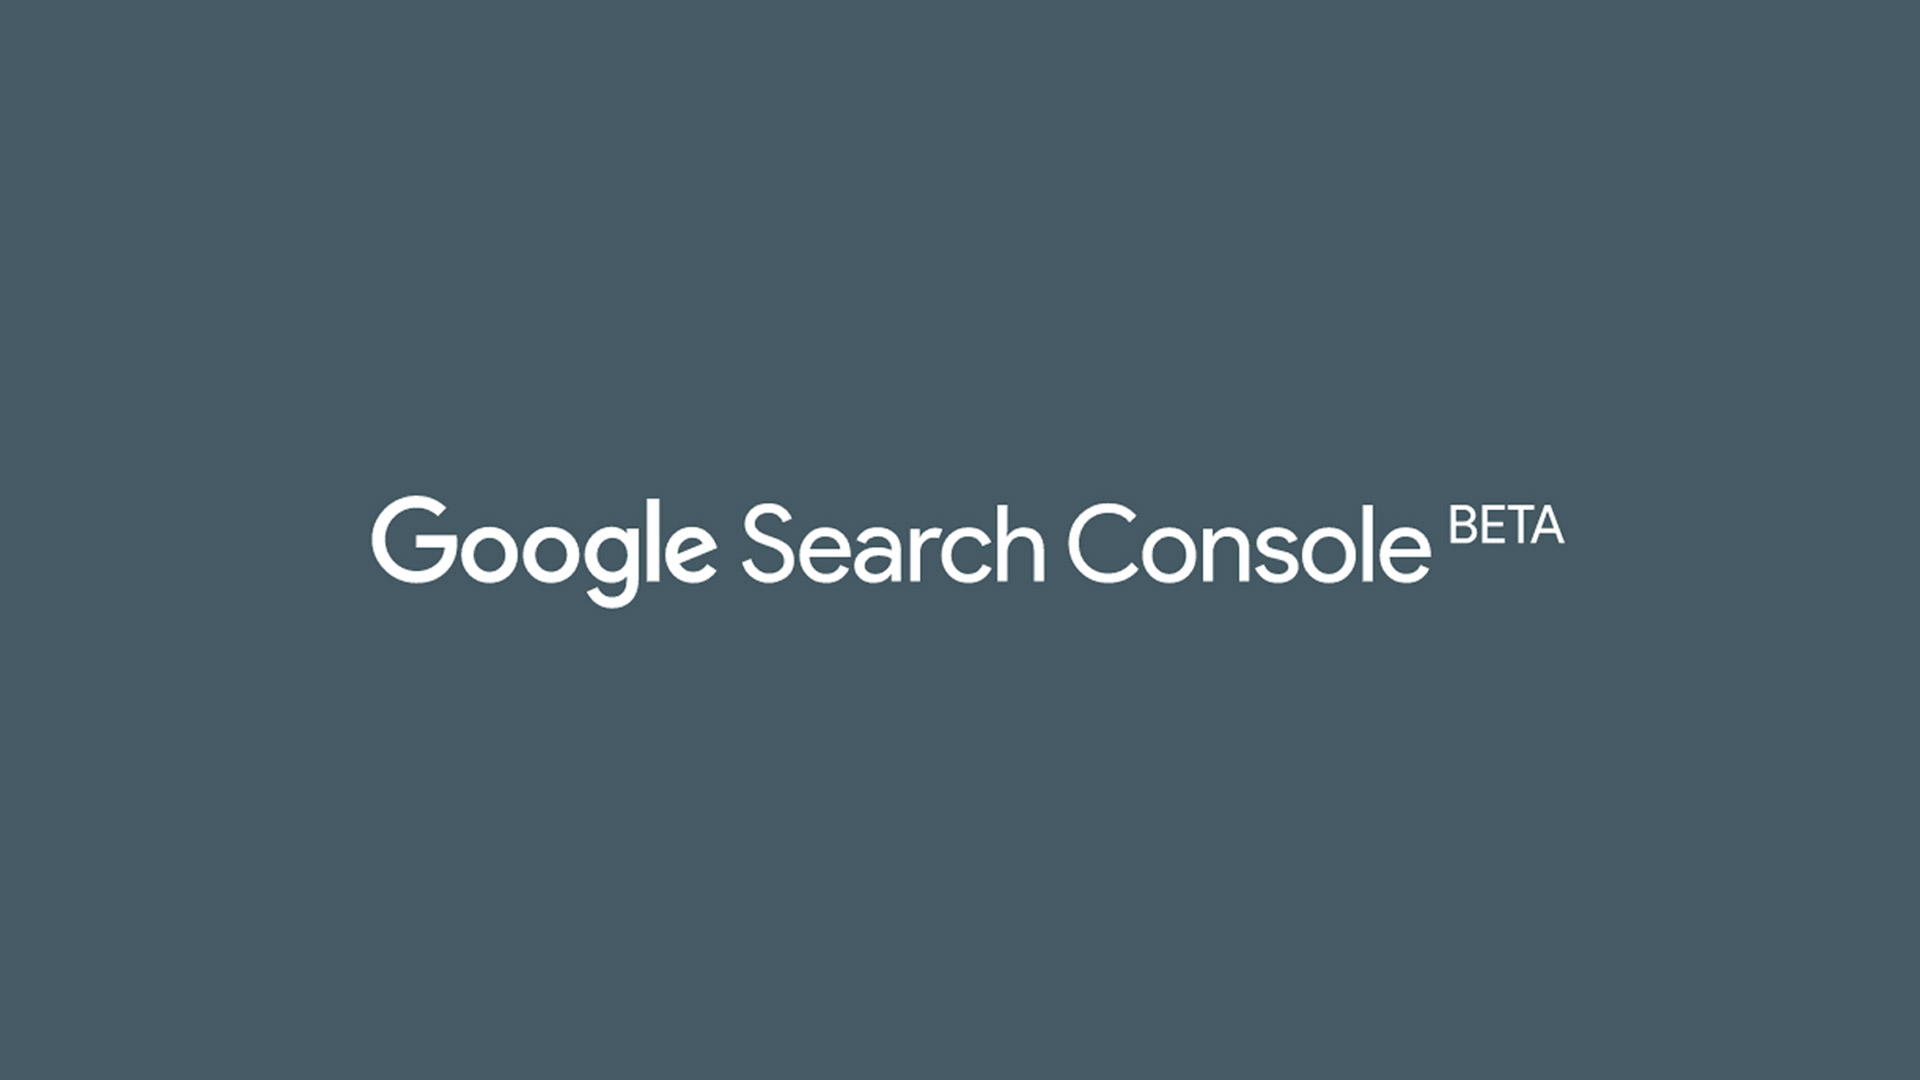 Google's New Search Console Beta - Great Start, but Missing Key Features